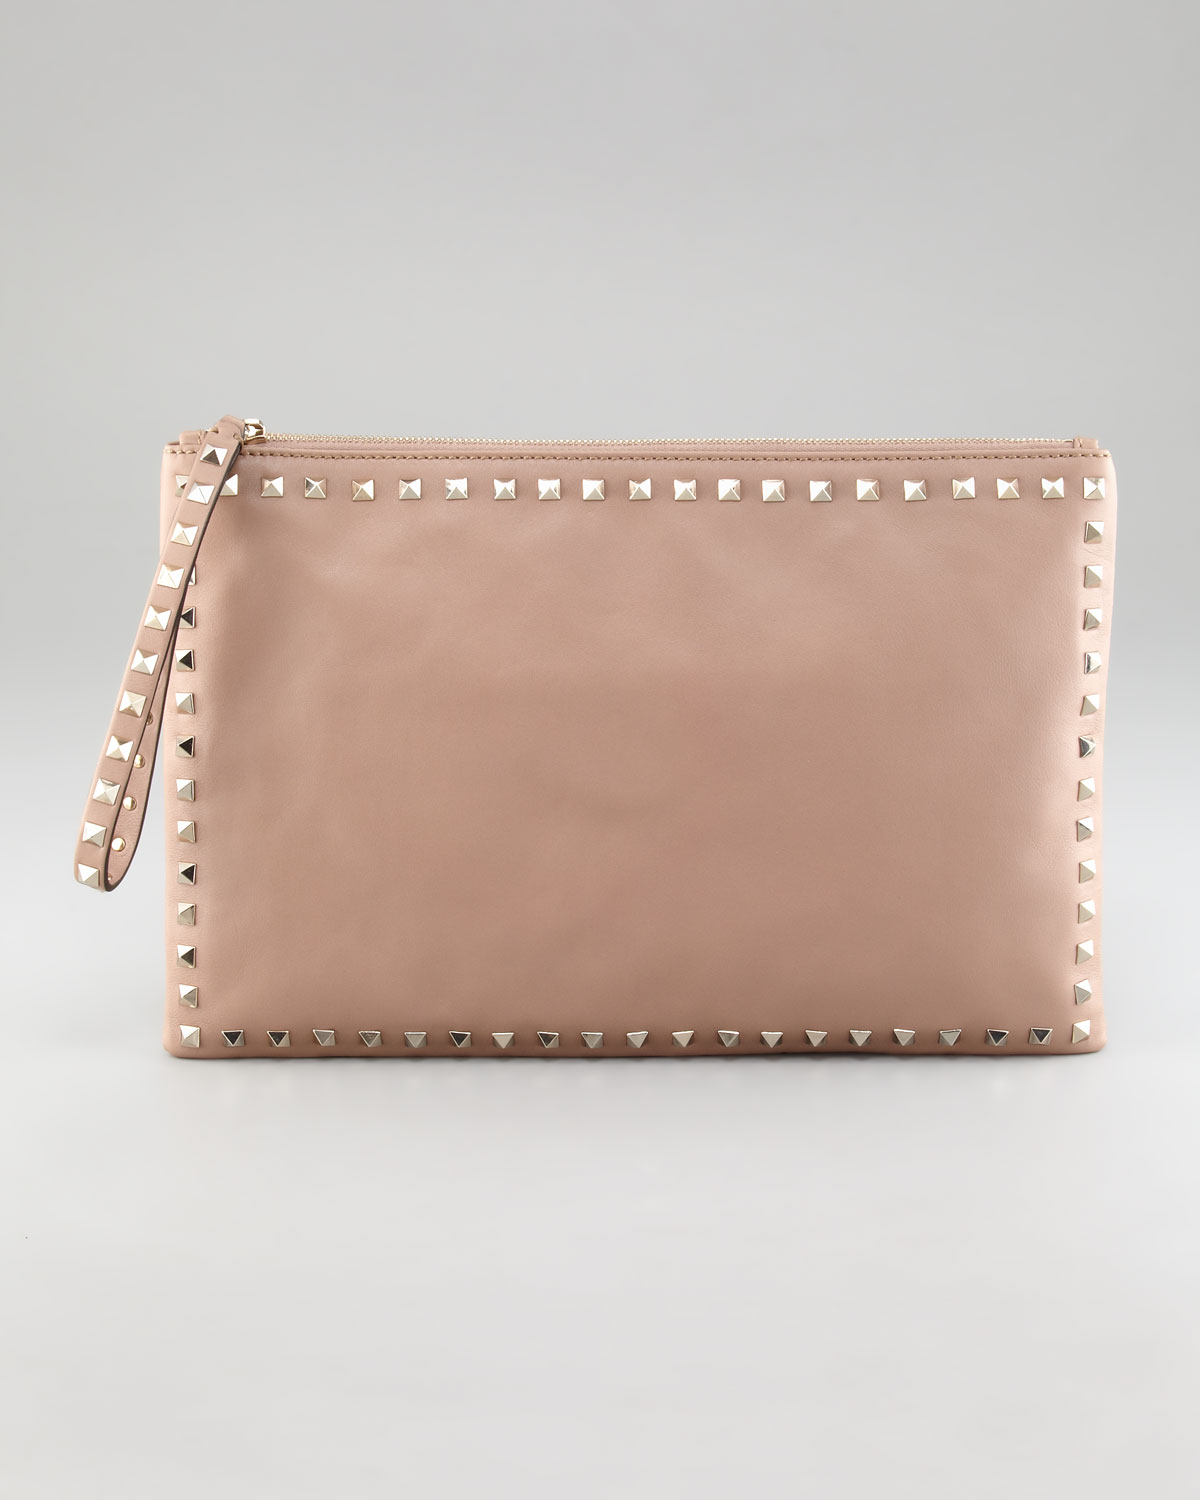 Valentino Womens Rockstud Leather Clutch Bag in Pink | Lyst